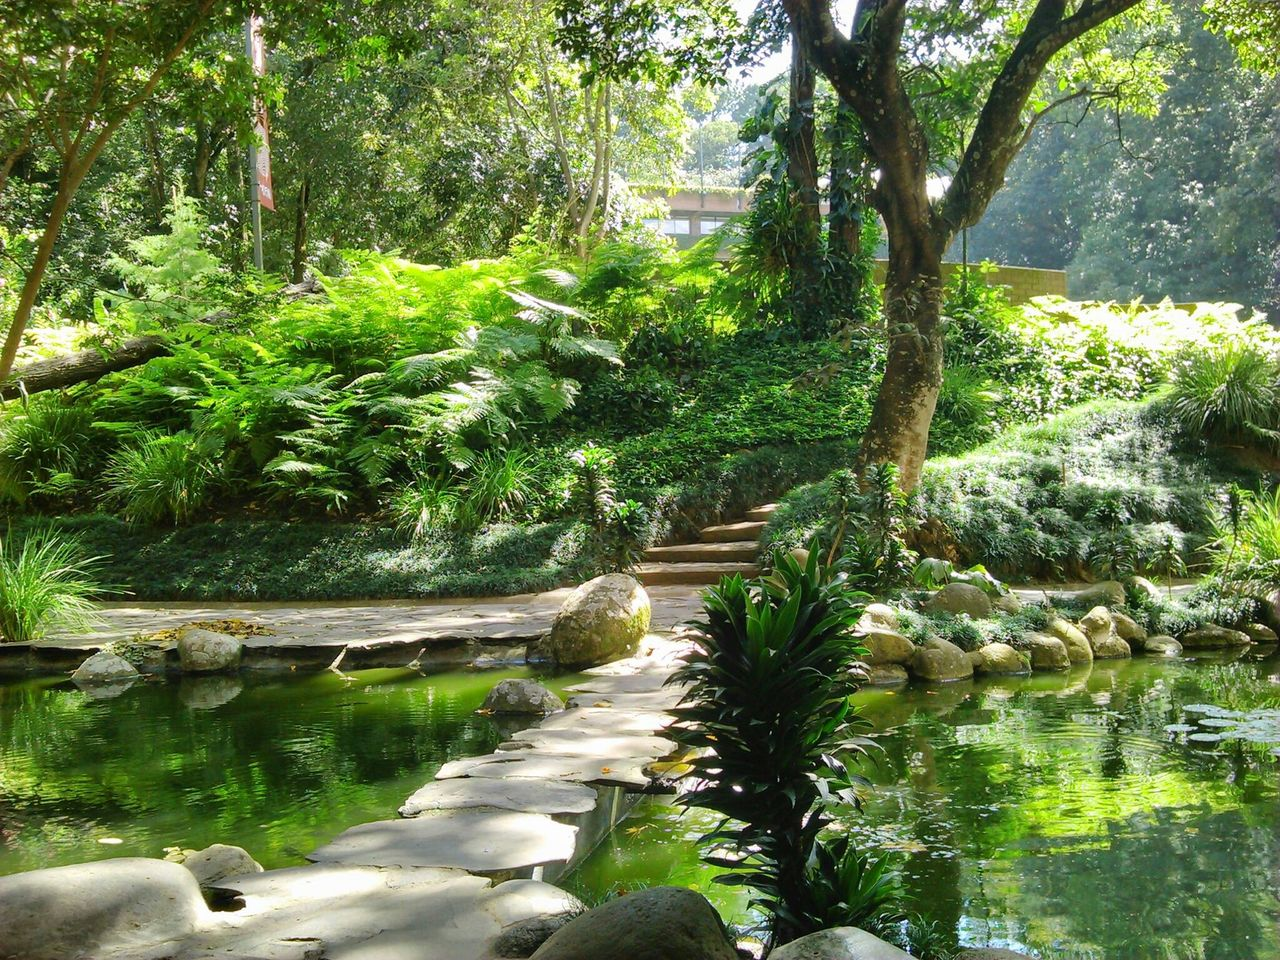 High Angle View Of Walkway Amidst Ponds In Park